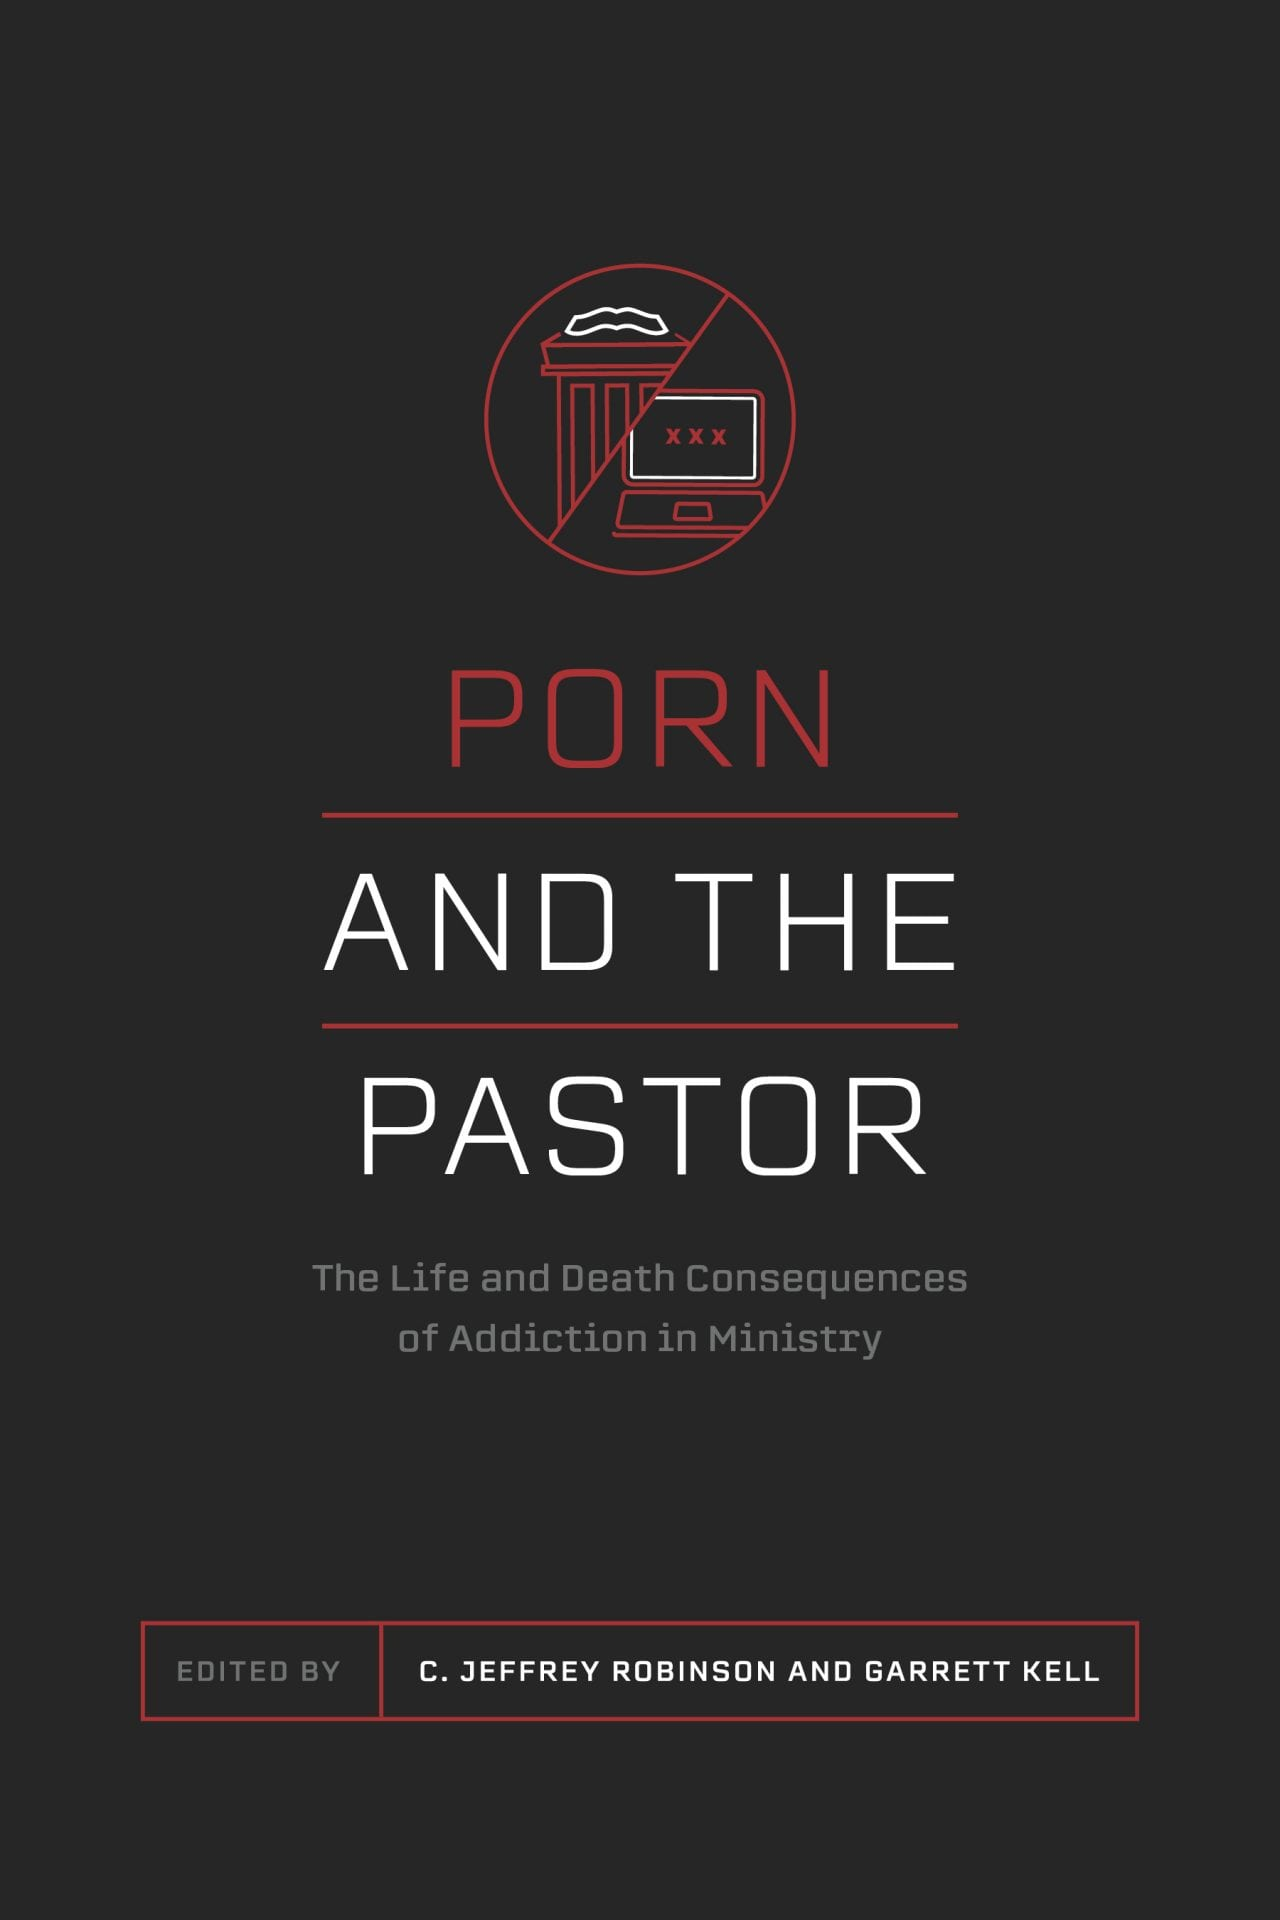 Porn and the Pastor